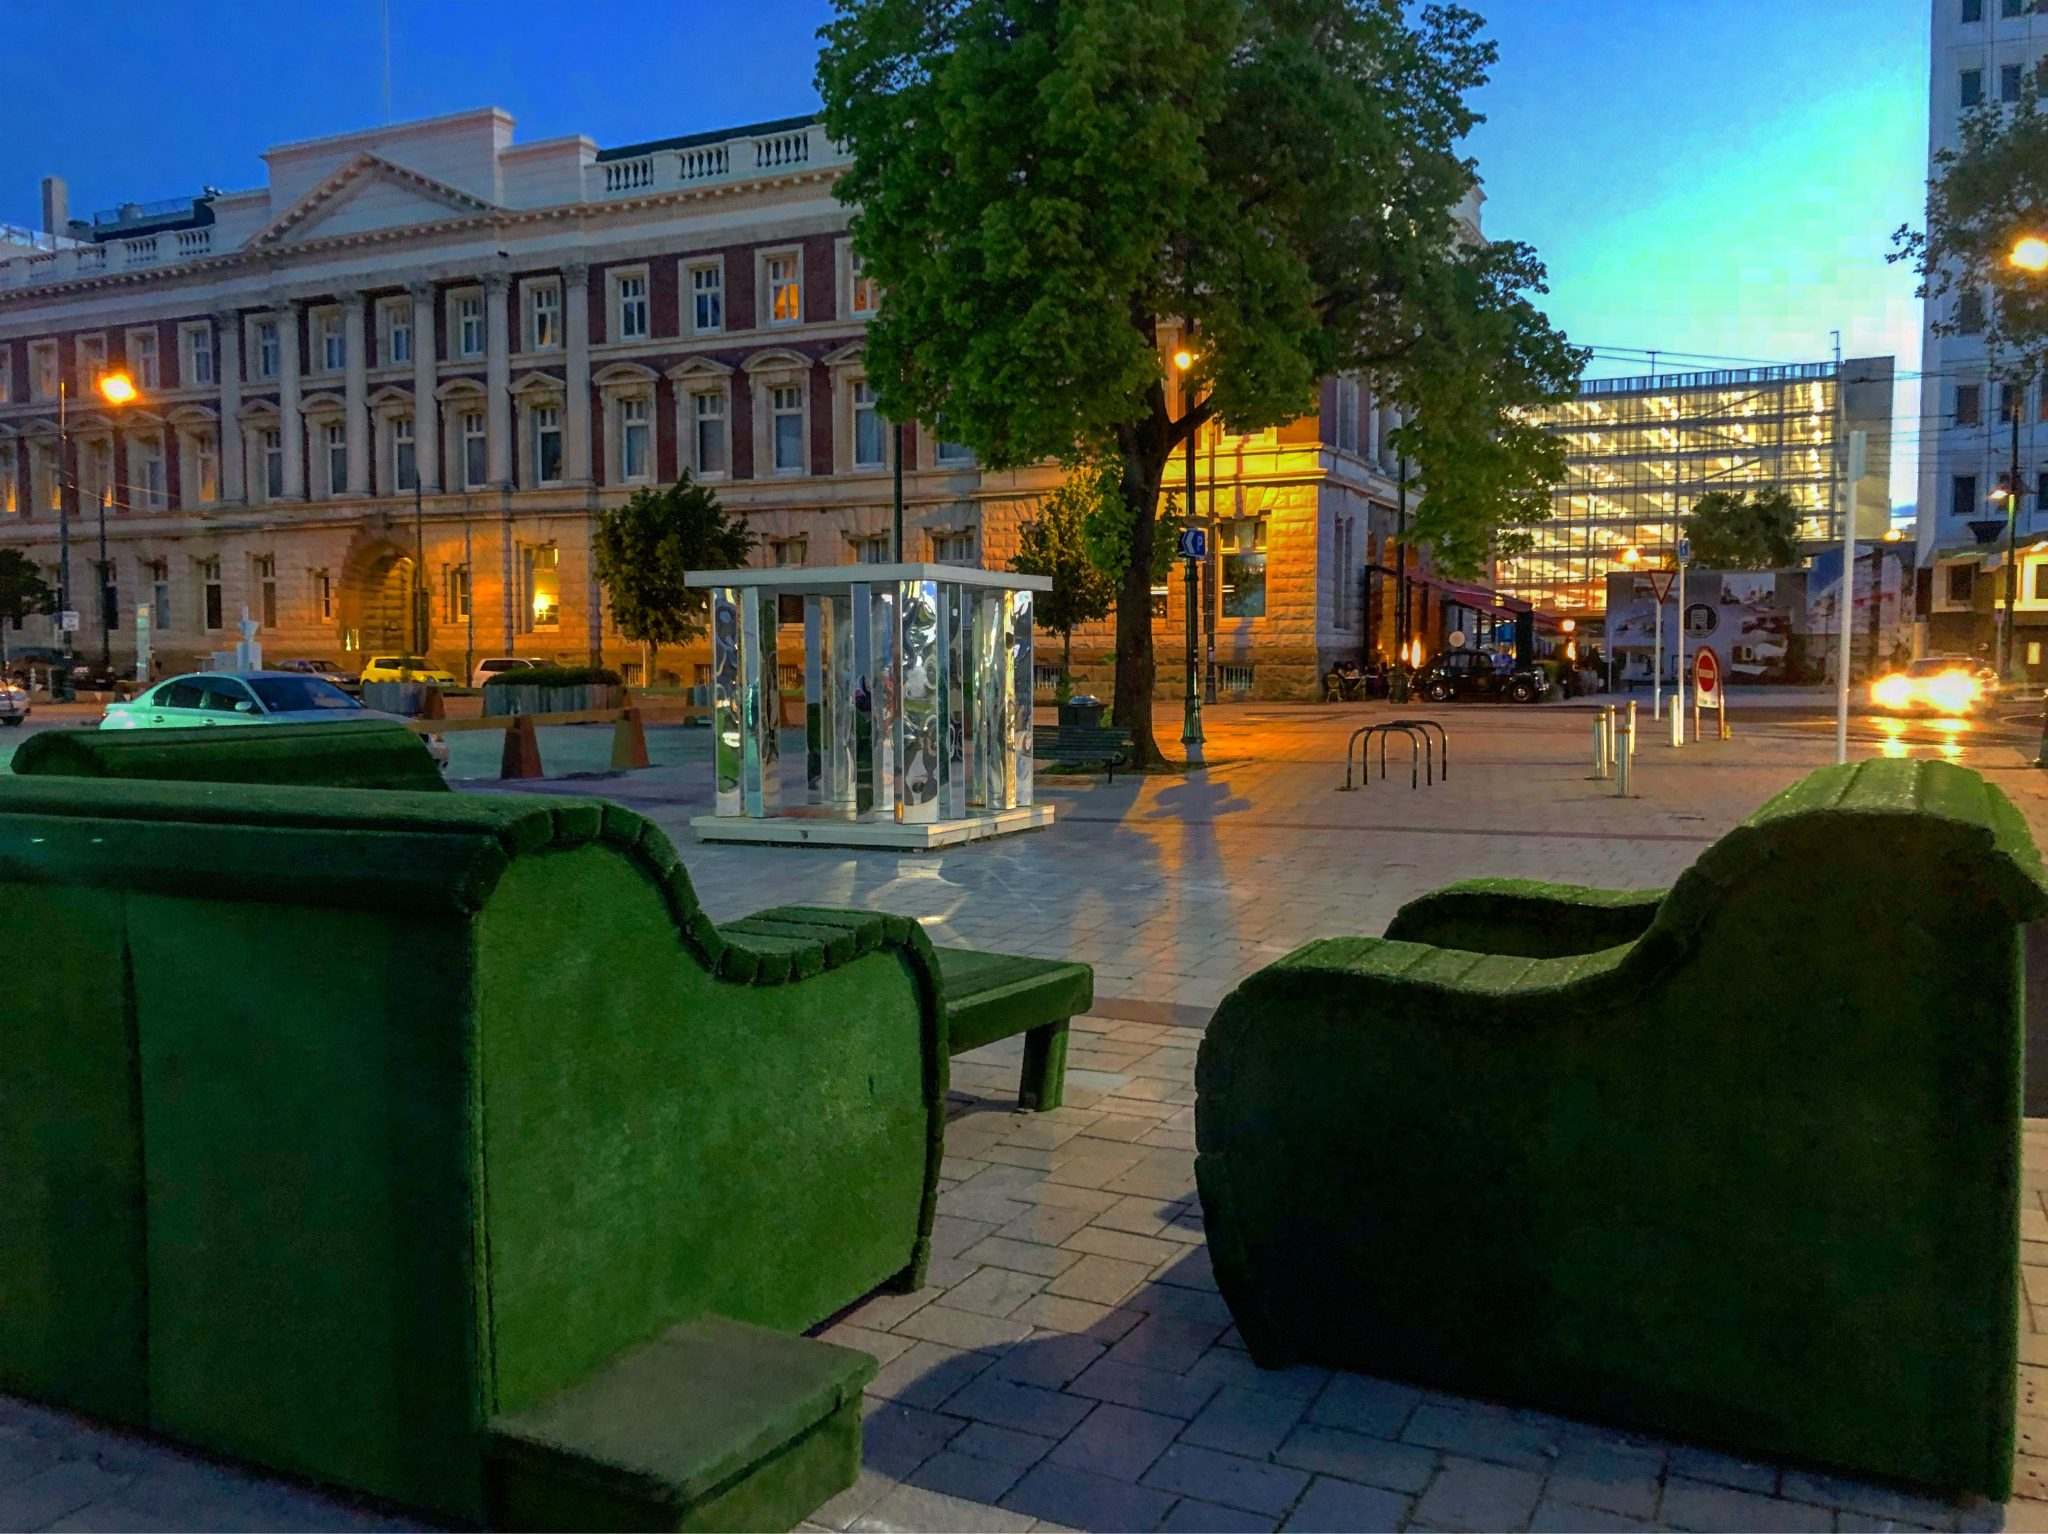 Christchurch Urban Square